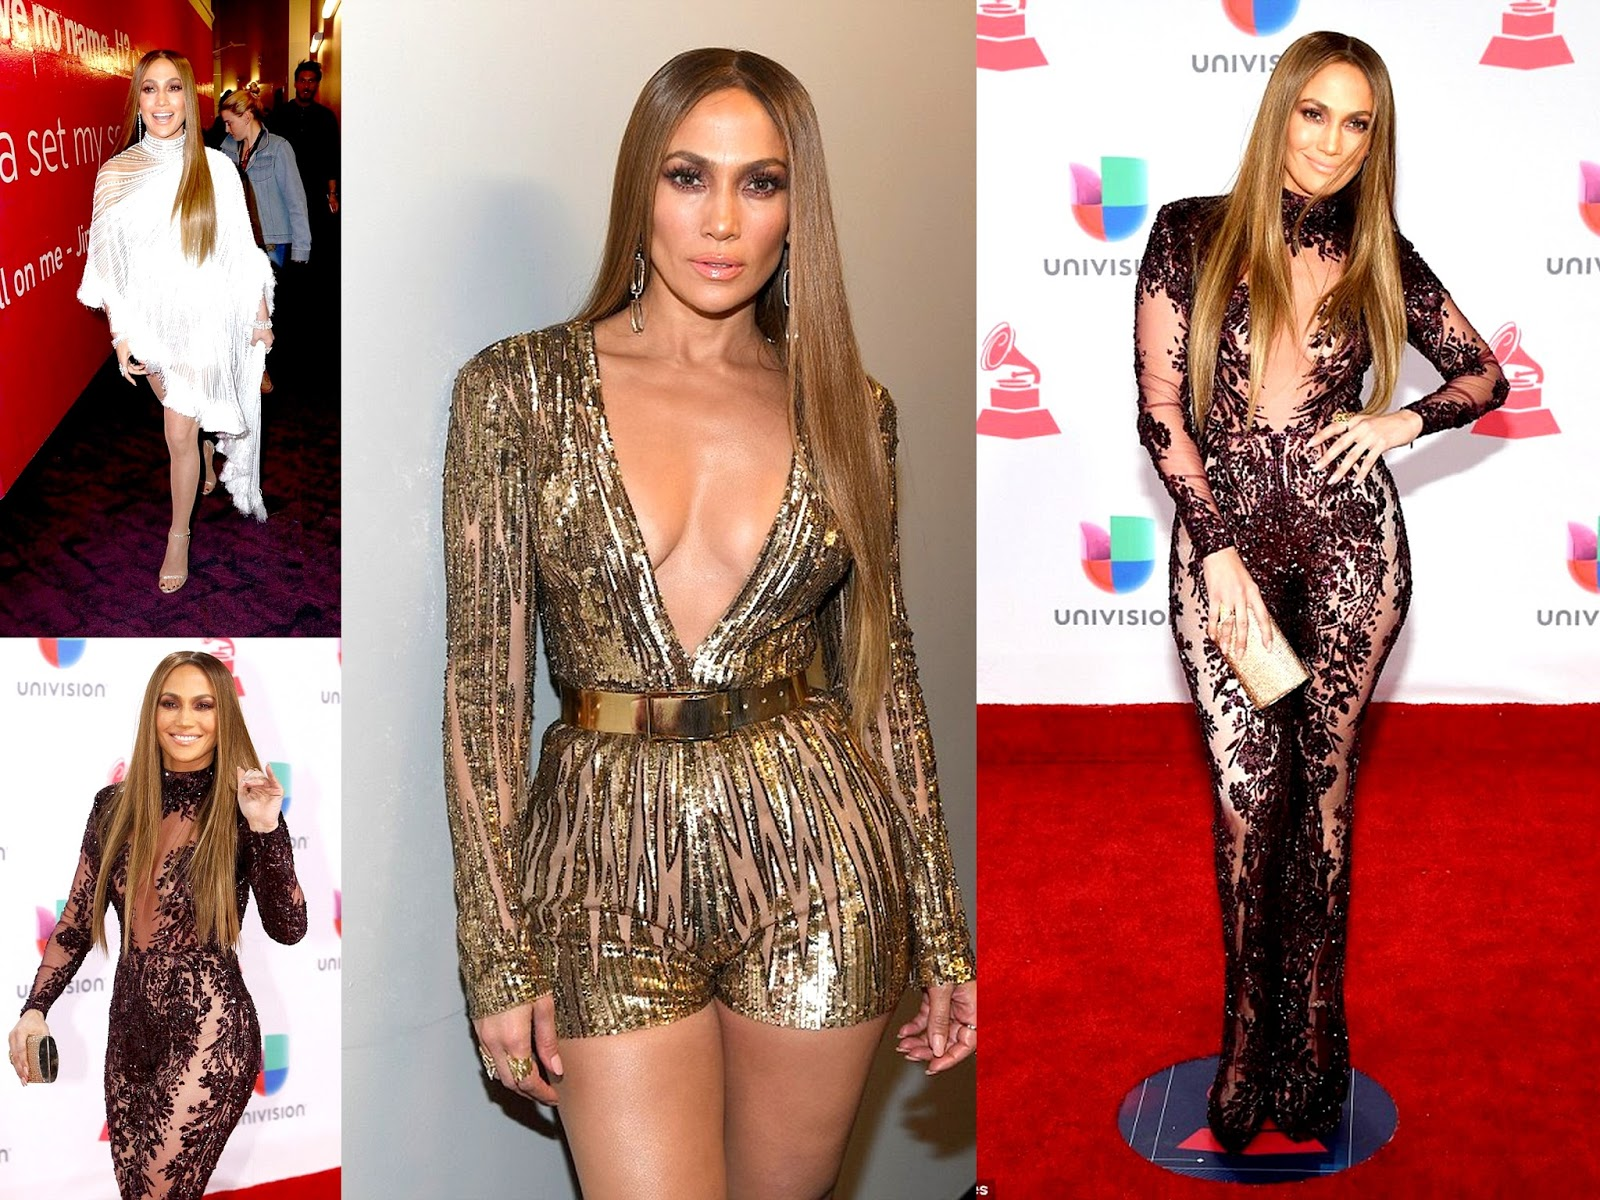 Chamber Of Beauty blog, Jennifer Lopez Looking Gorgeous in THREE beautiful outfits at the Latin Grammy Awards